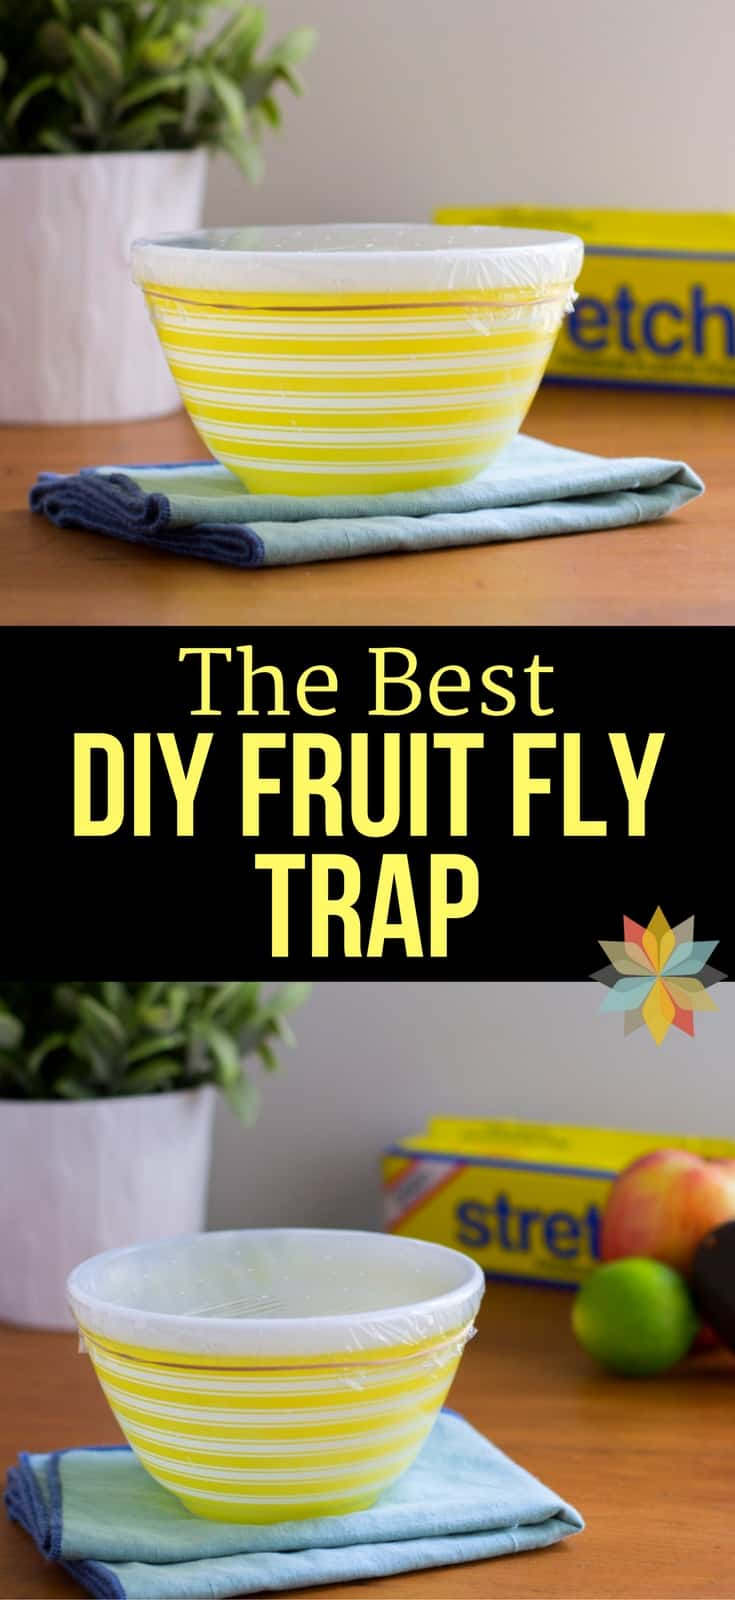 The Best DIY Fruit Fly Trap! Are Pesky Fruit Flies driving you batty? I tried out a bunch of traps, but this is the Best Fruit Fly Trap that I found!